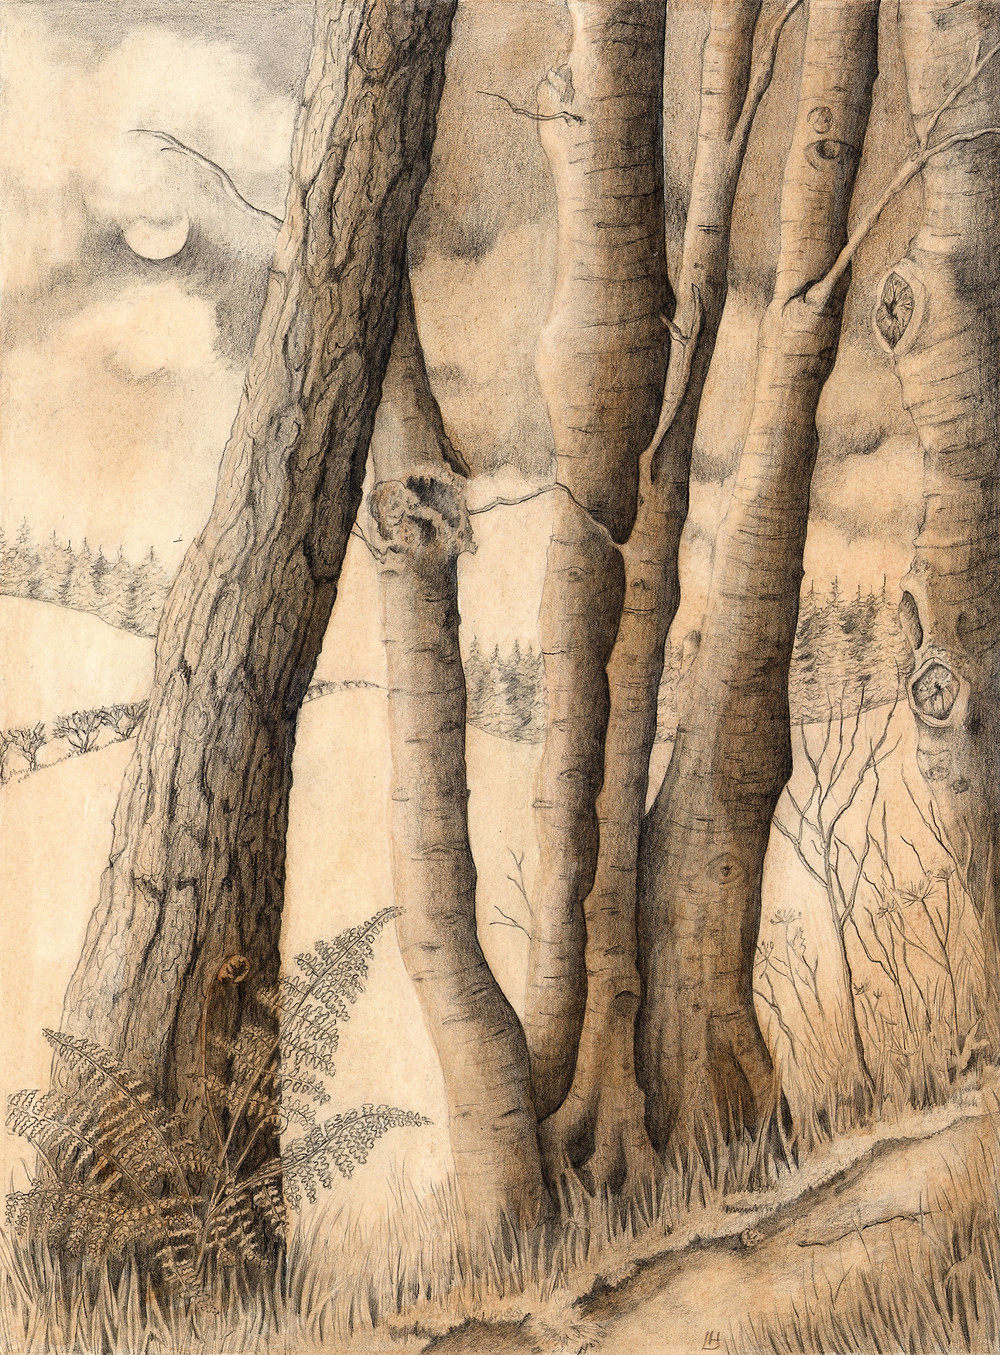 Night Woodland - A tonal pencil drawing with watercolour sepia wash to evoke the tinted lithography of days gone by.